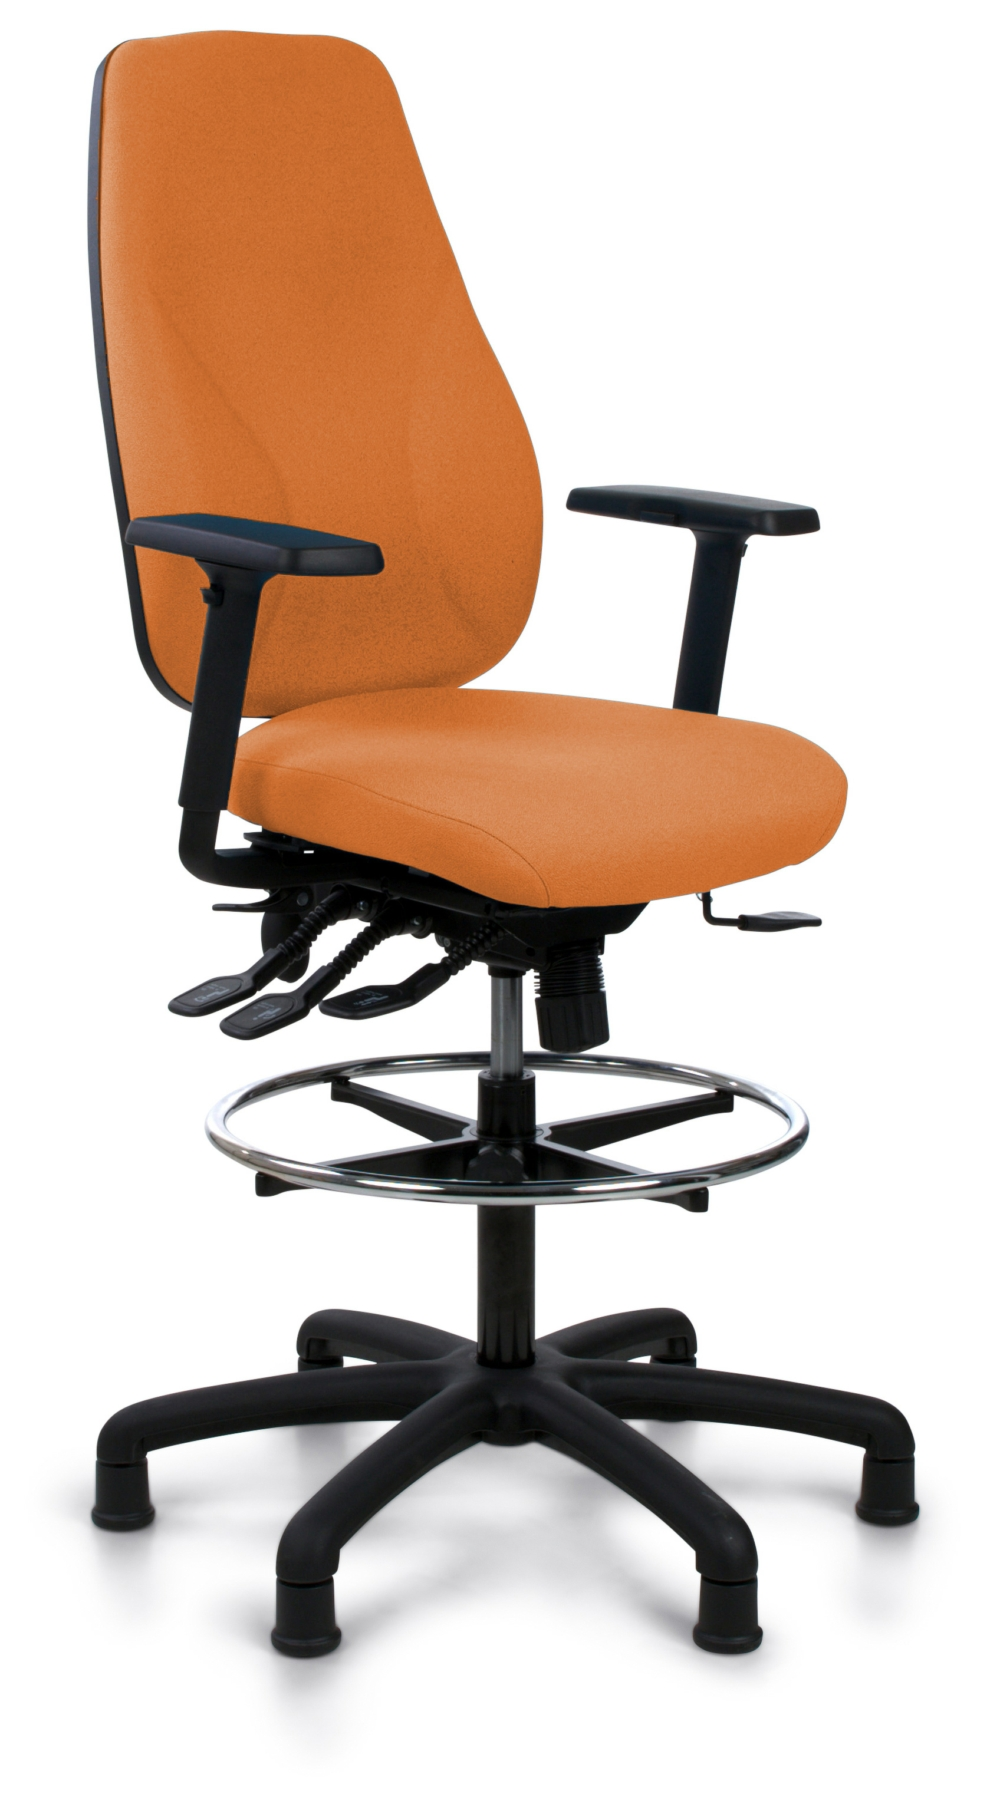 comfort office chair. Comfort Office Chair